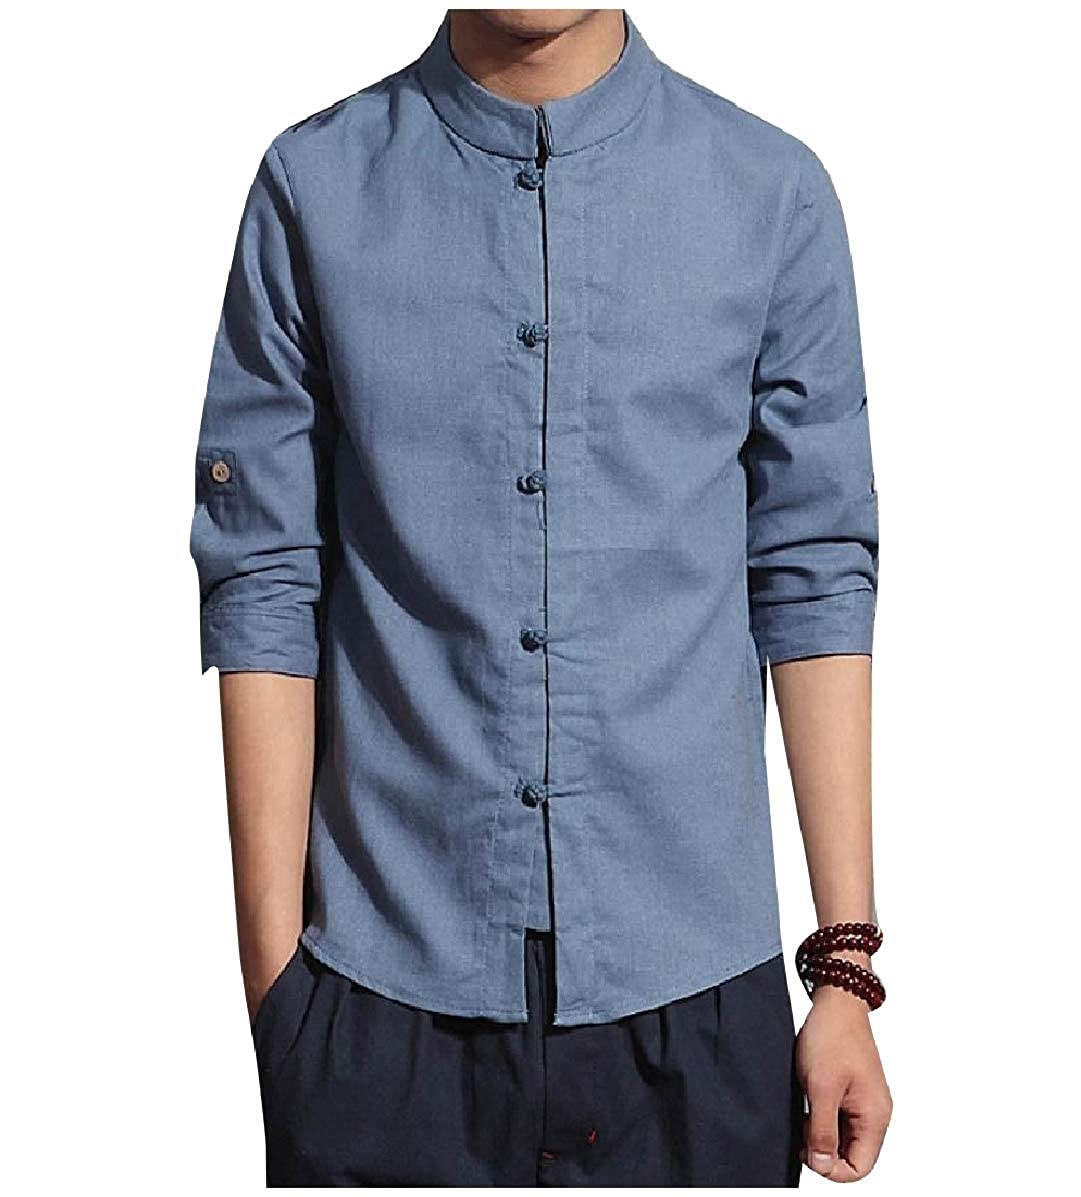 YUNY Mens Chinese Style Linen 3//4 Sleeve Back Cotton Western Shirt Denim Blue S